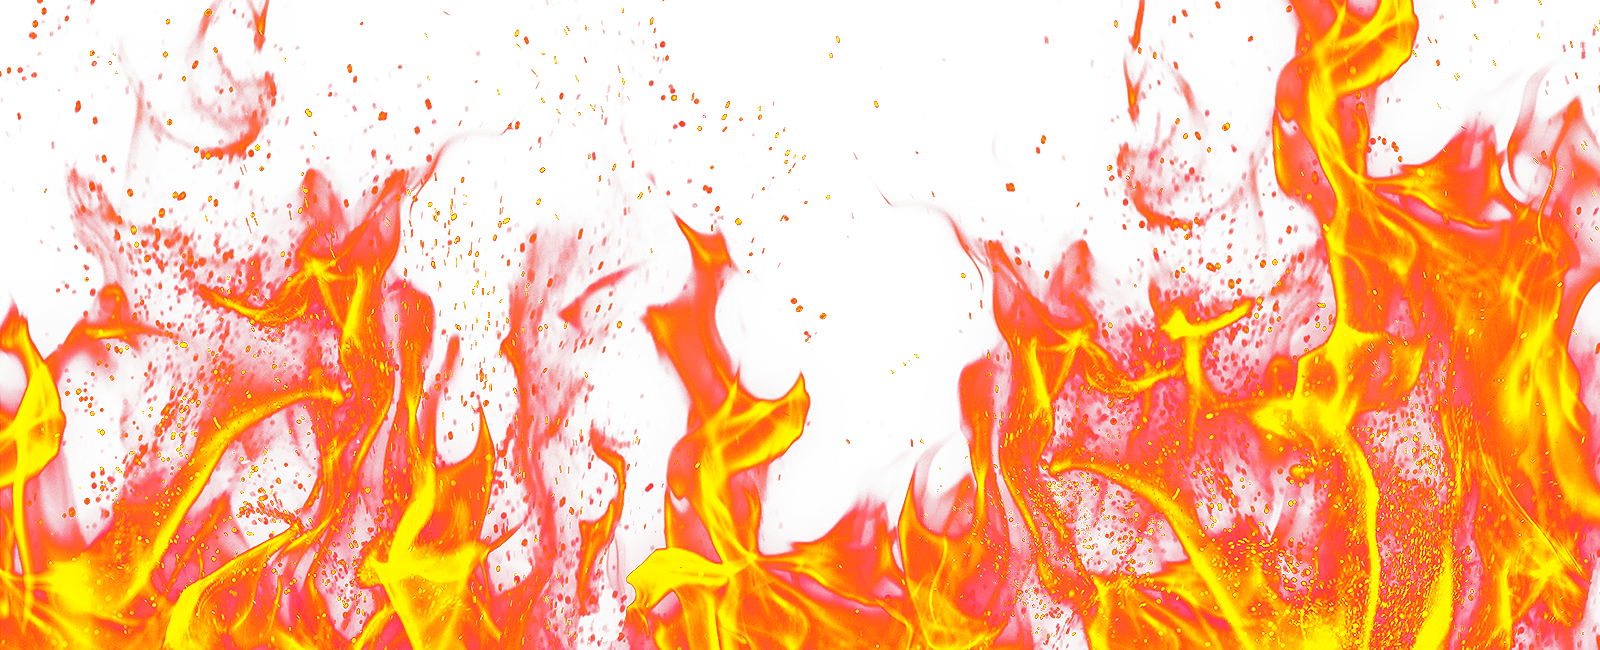 1600x650 Fire Flame Png Images Free Download